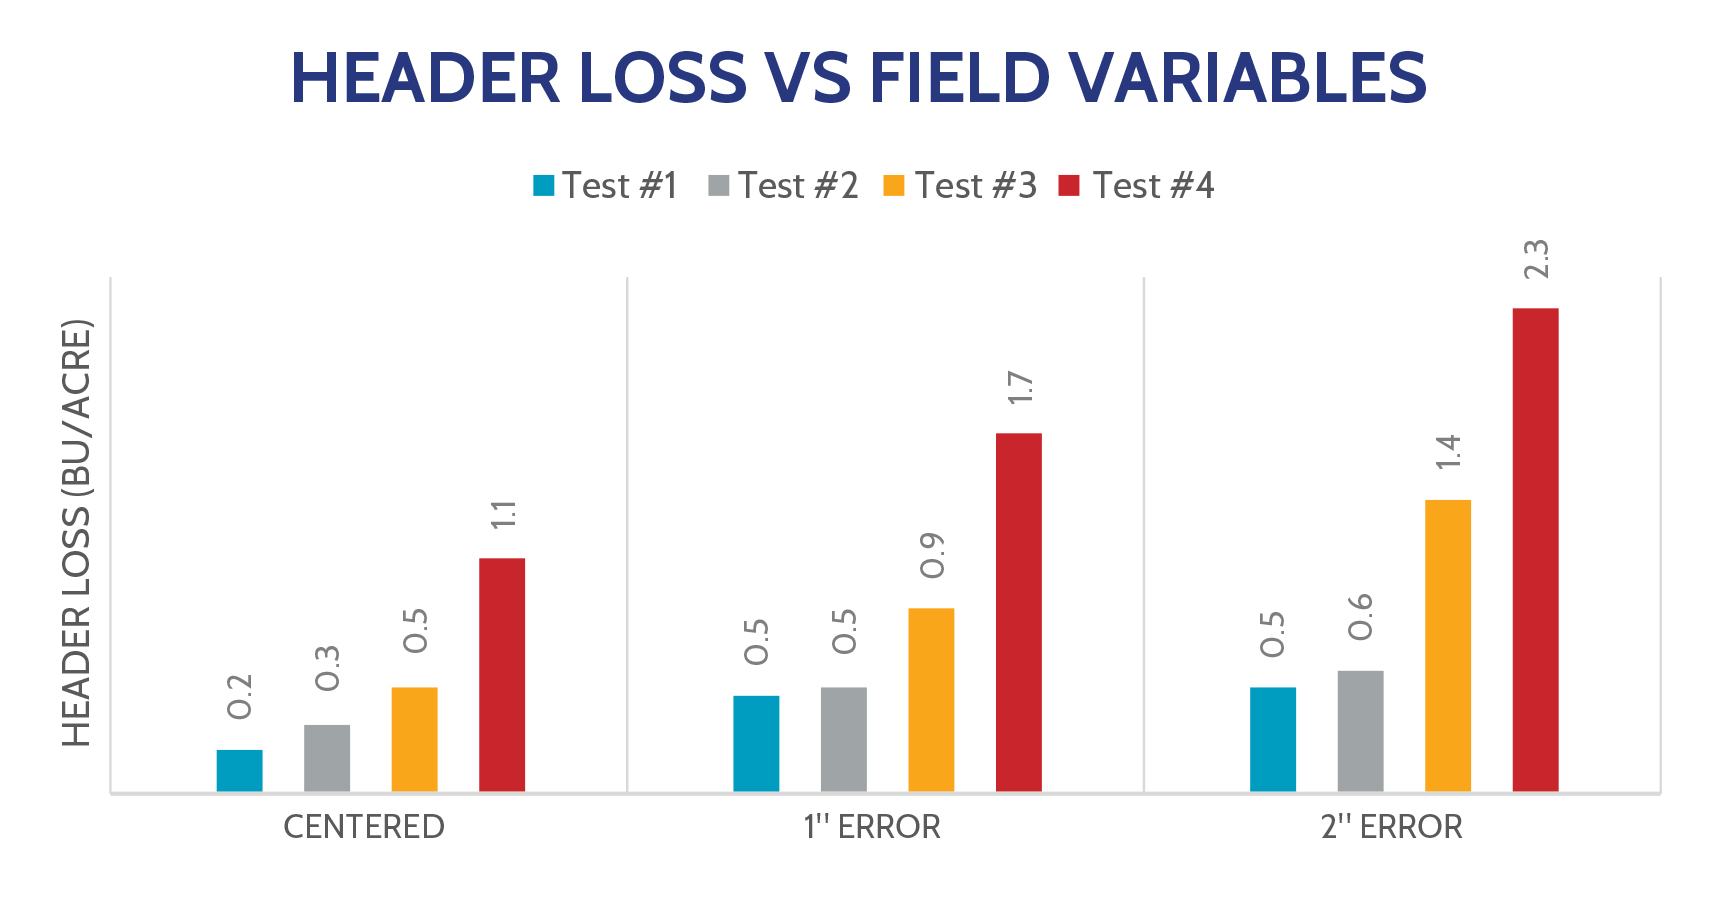 Table 2: Header loss vs field variables Harvested moisture ranged from 24% in Test #1 to 17% in Test #4.